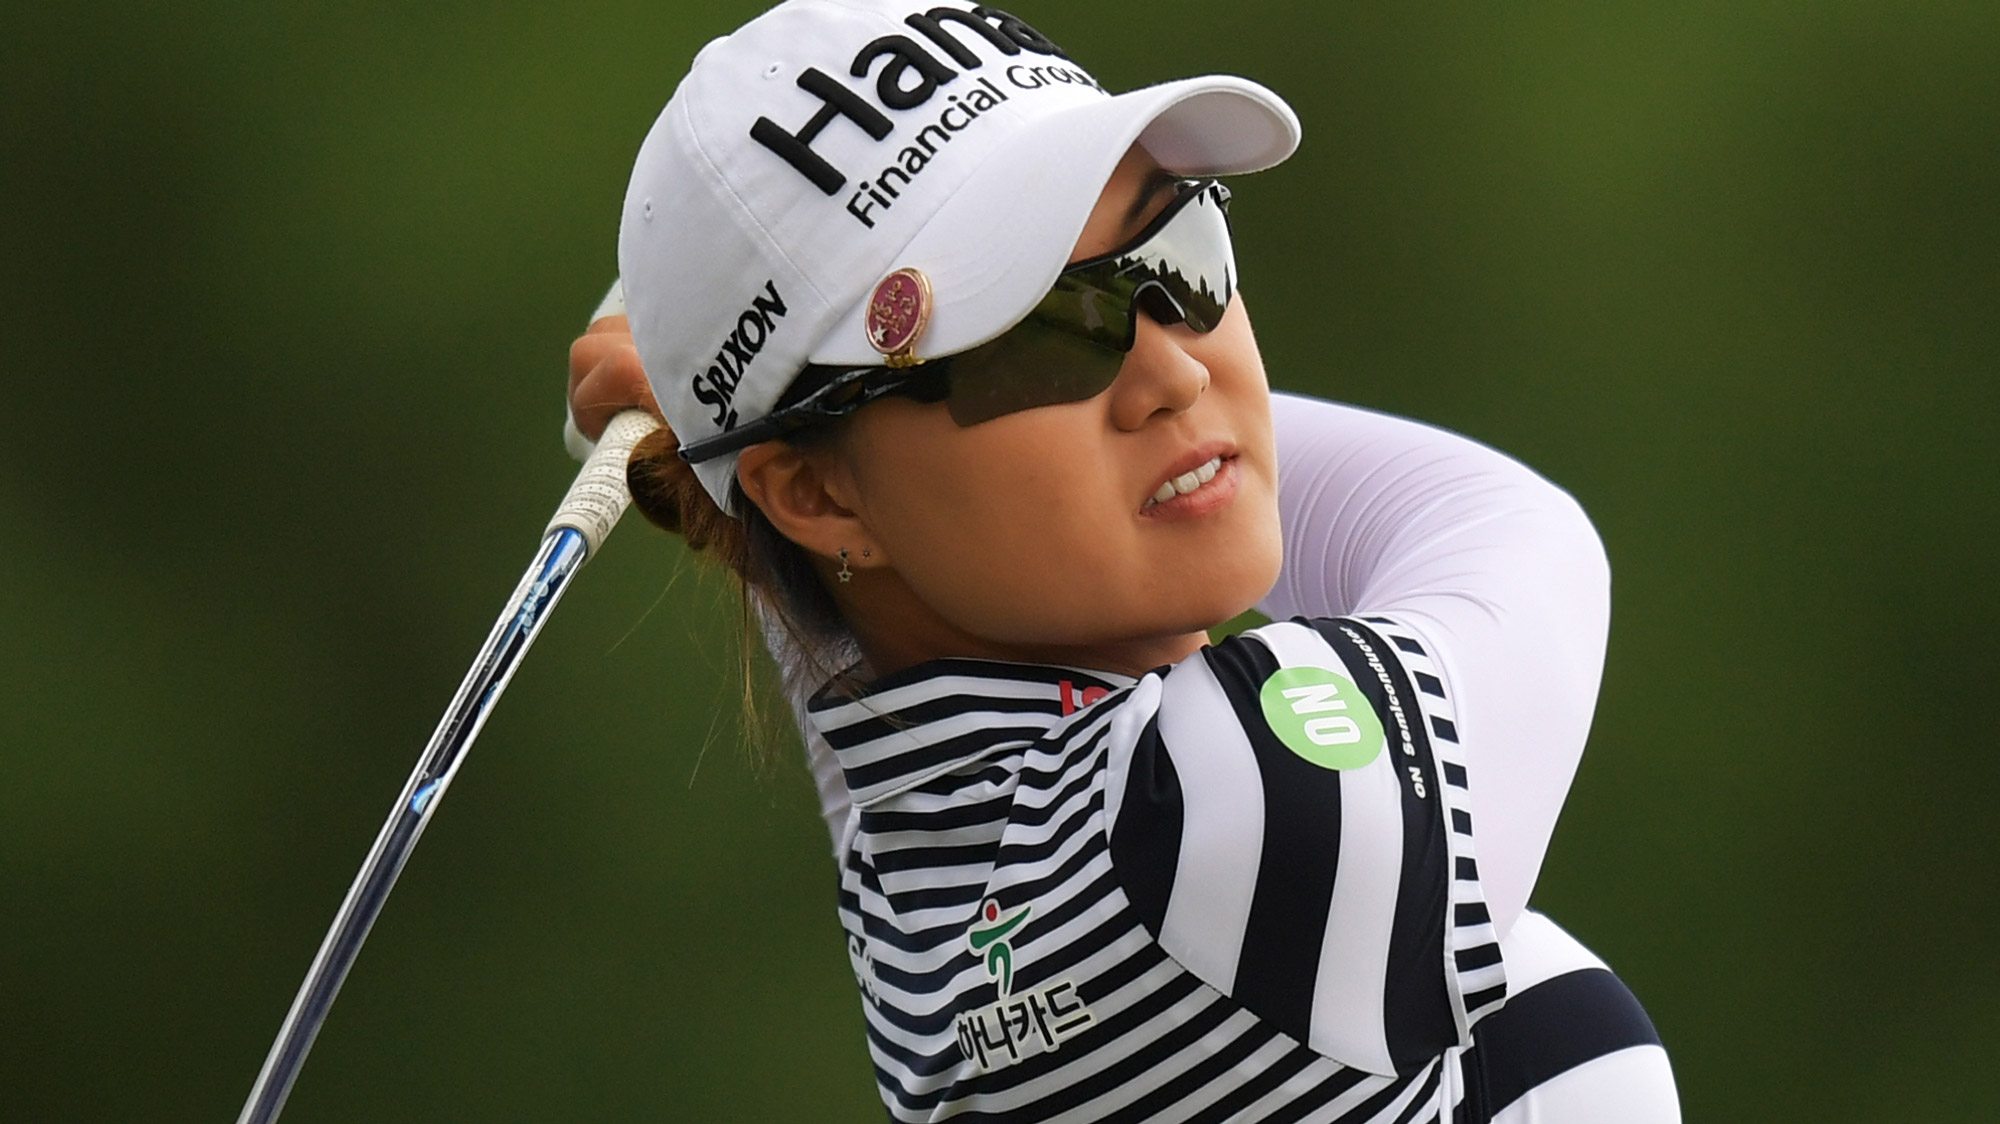 Minjee Lee at the Walmart NW Arkansas Championship